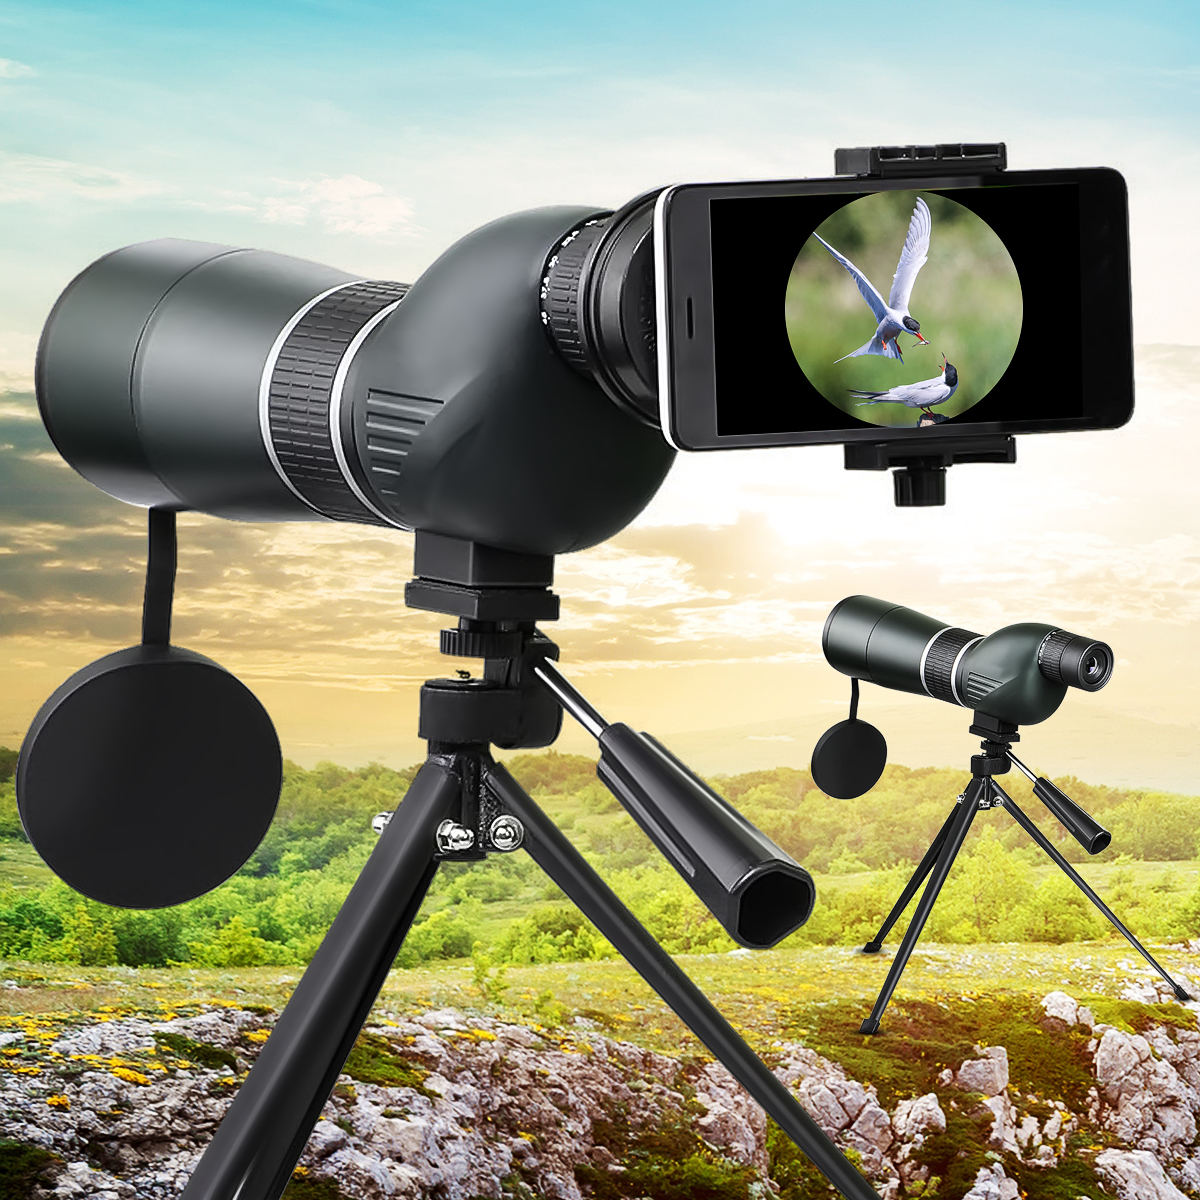 45X to 15X 60S HD Powerful Binoculars Great Handheld Telescope Night Vision Military HD Professional Hunting 60mm 15x magnification hd telescope w glimmer night vision black